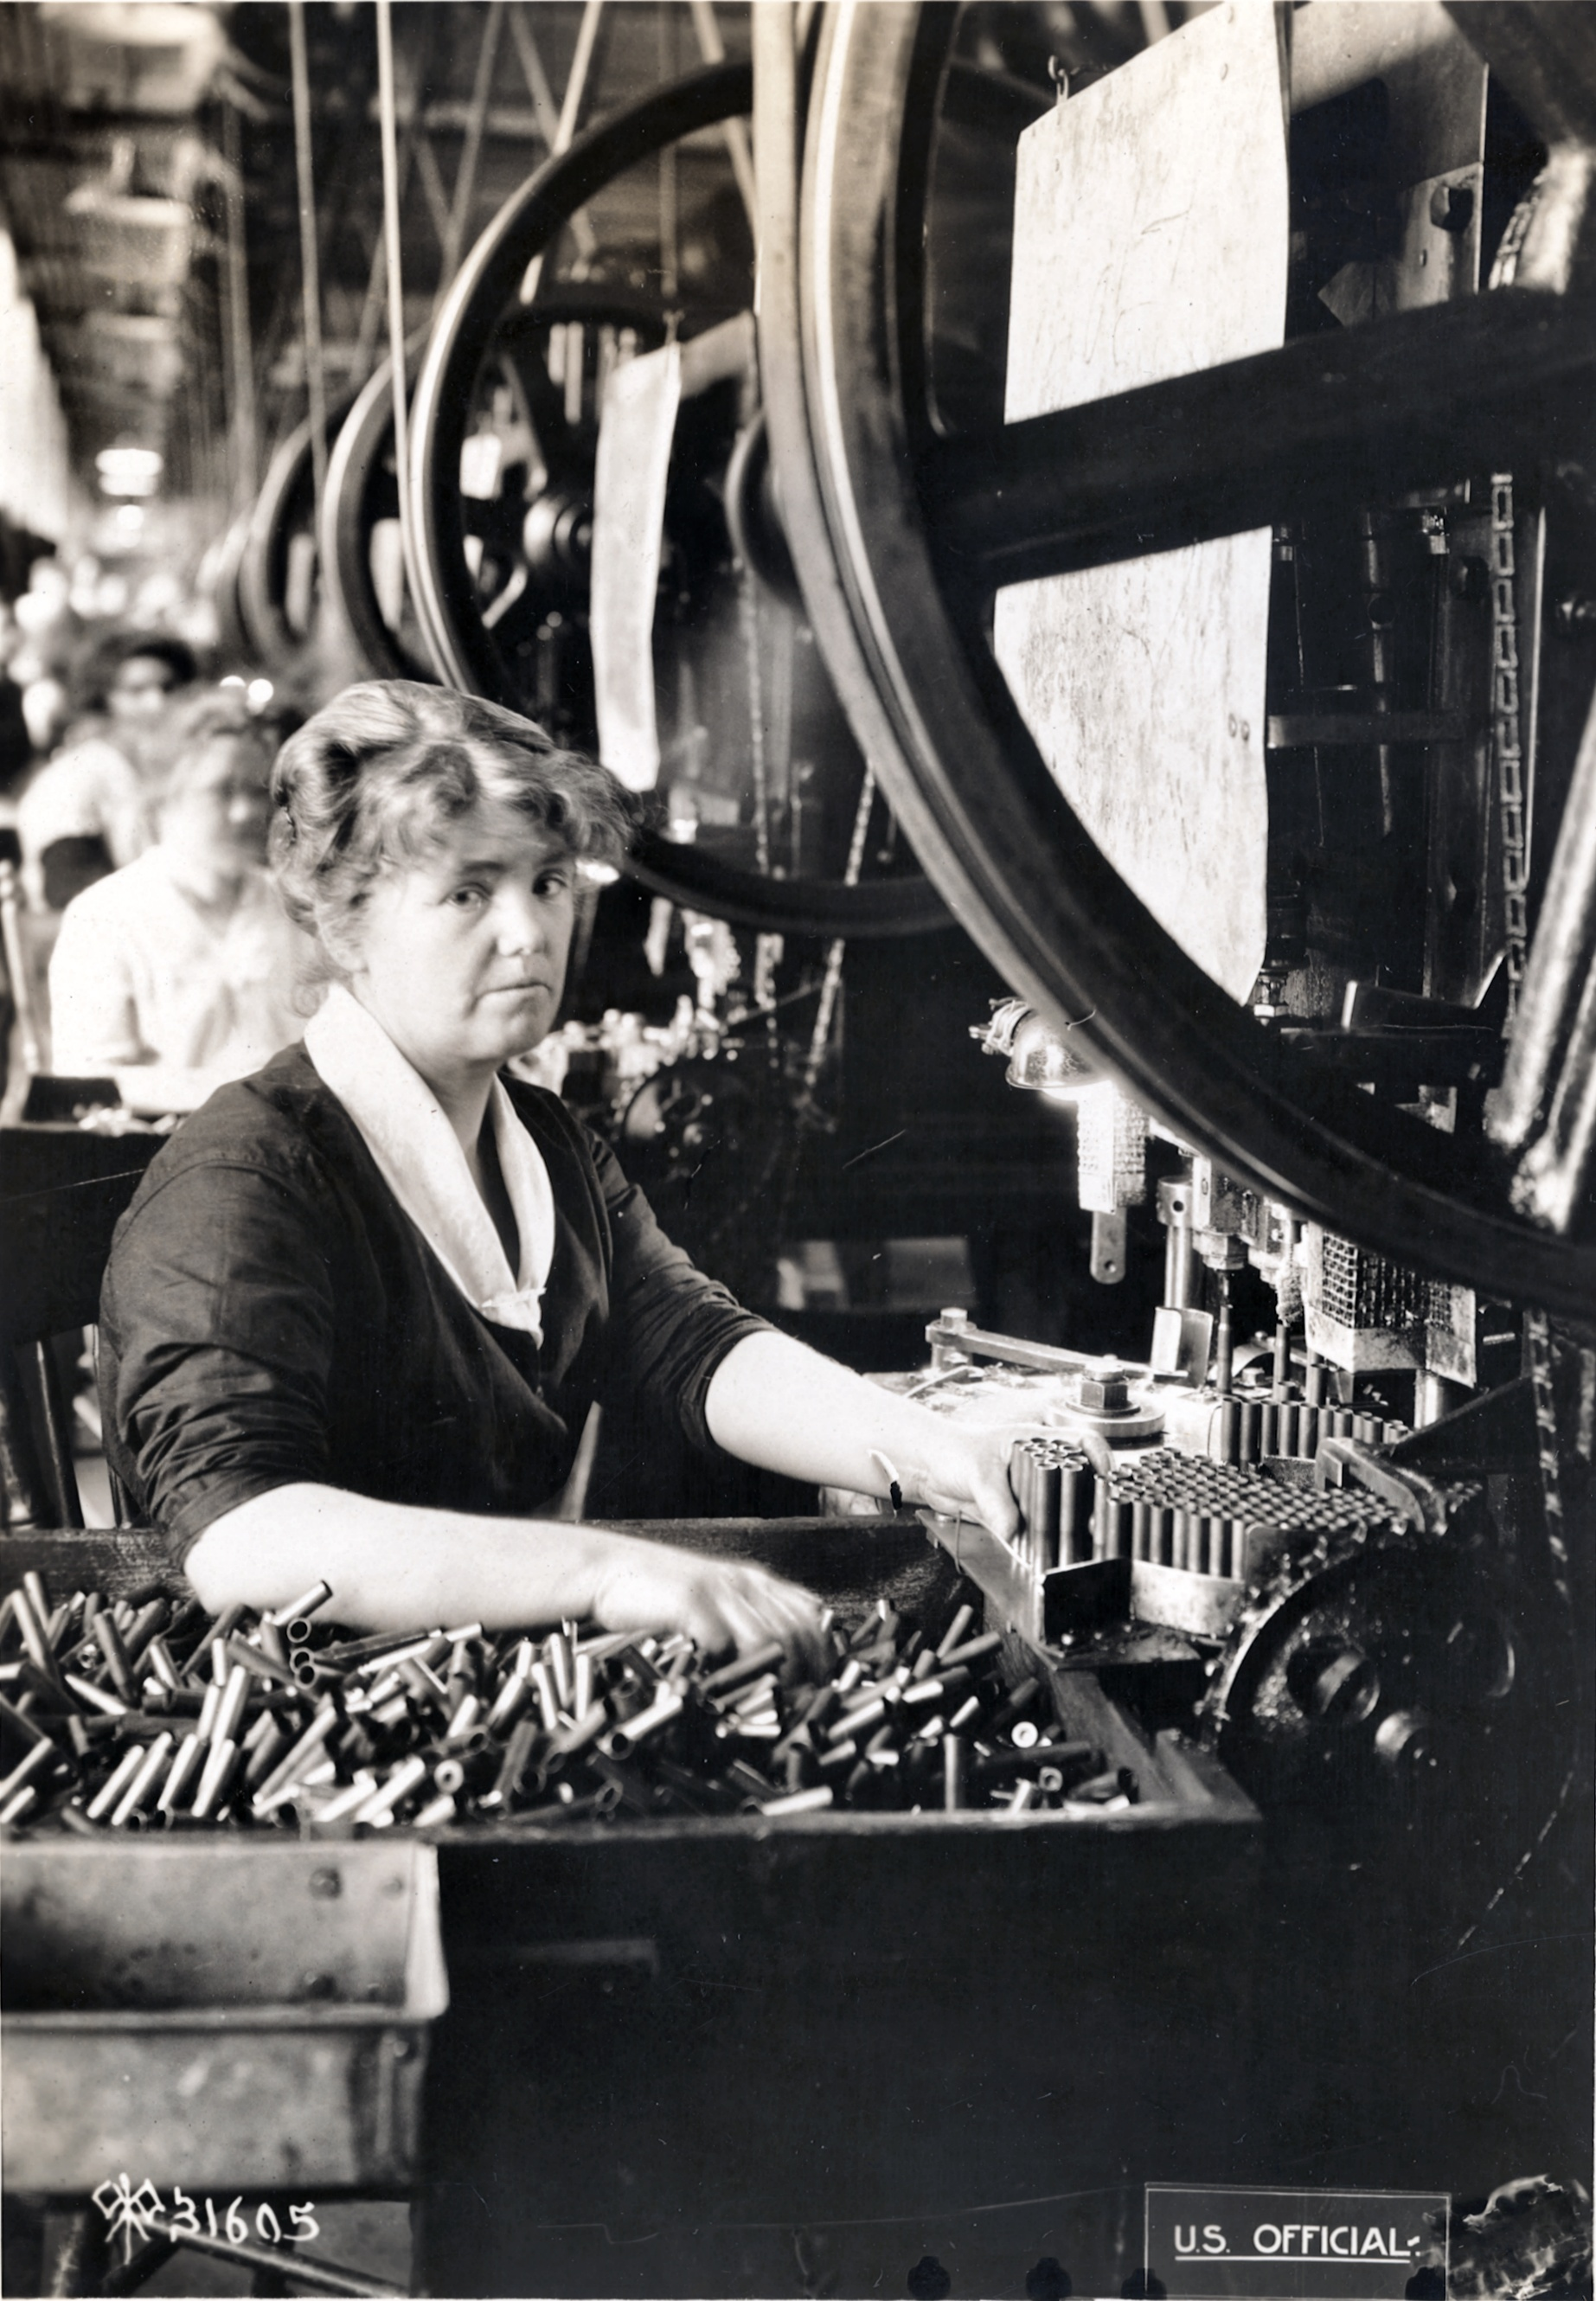 Woman at work during World War I (between 1914 and 1918)